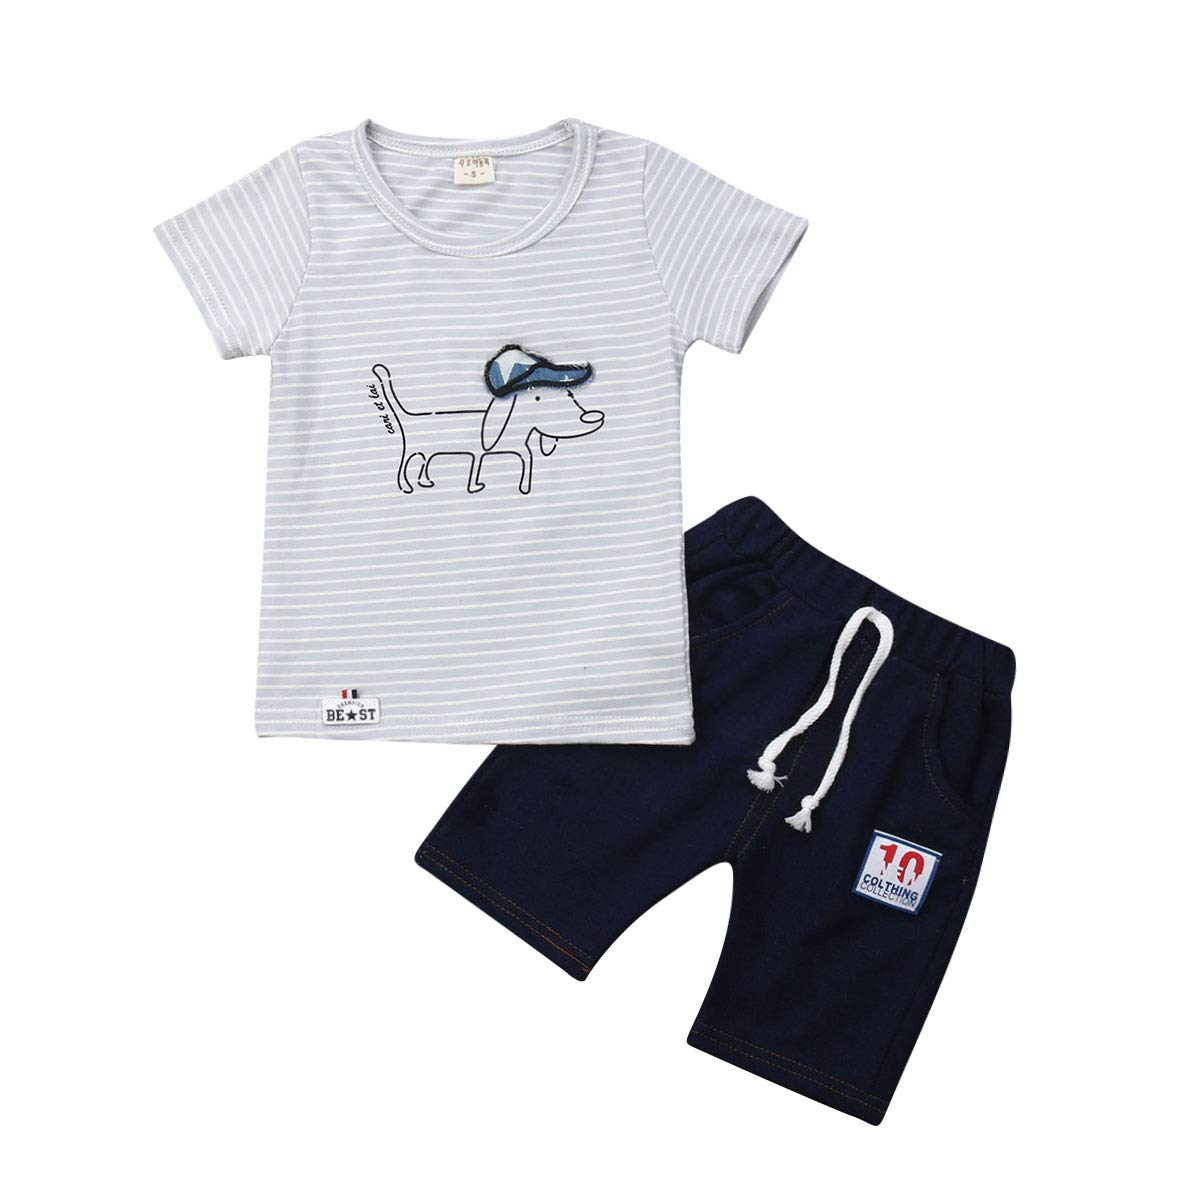 Kids Baby Summer Outfits Short Sleeve T-Shirt /& Shorts Sets 1-4Y Toddler